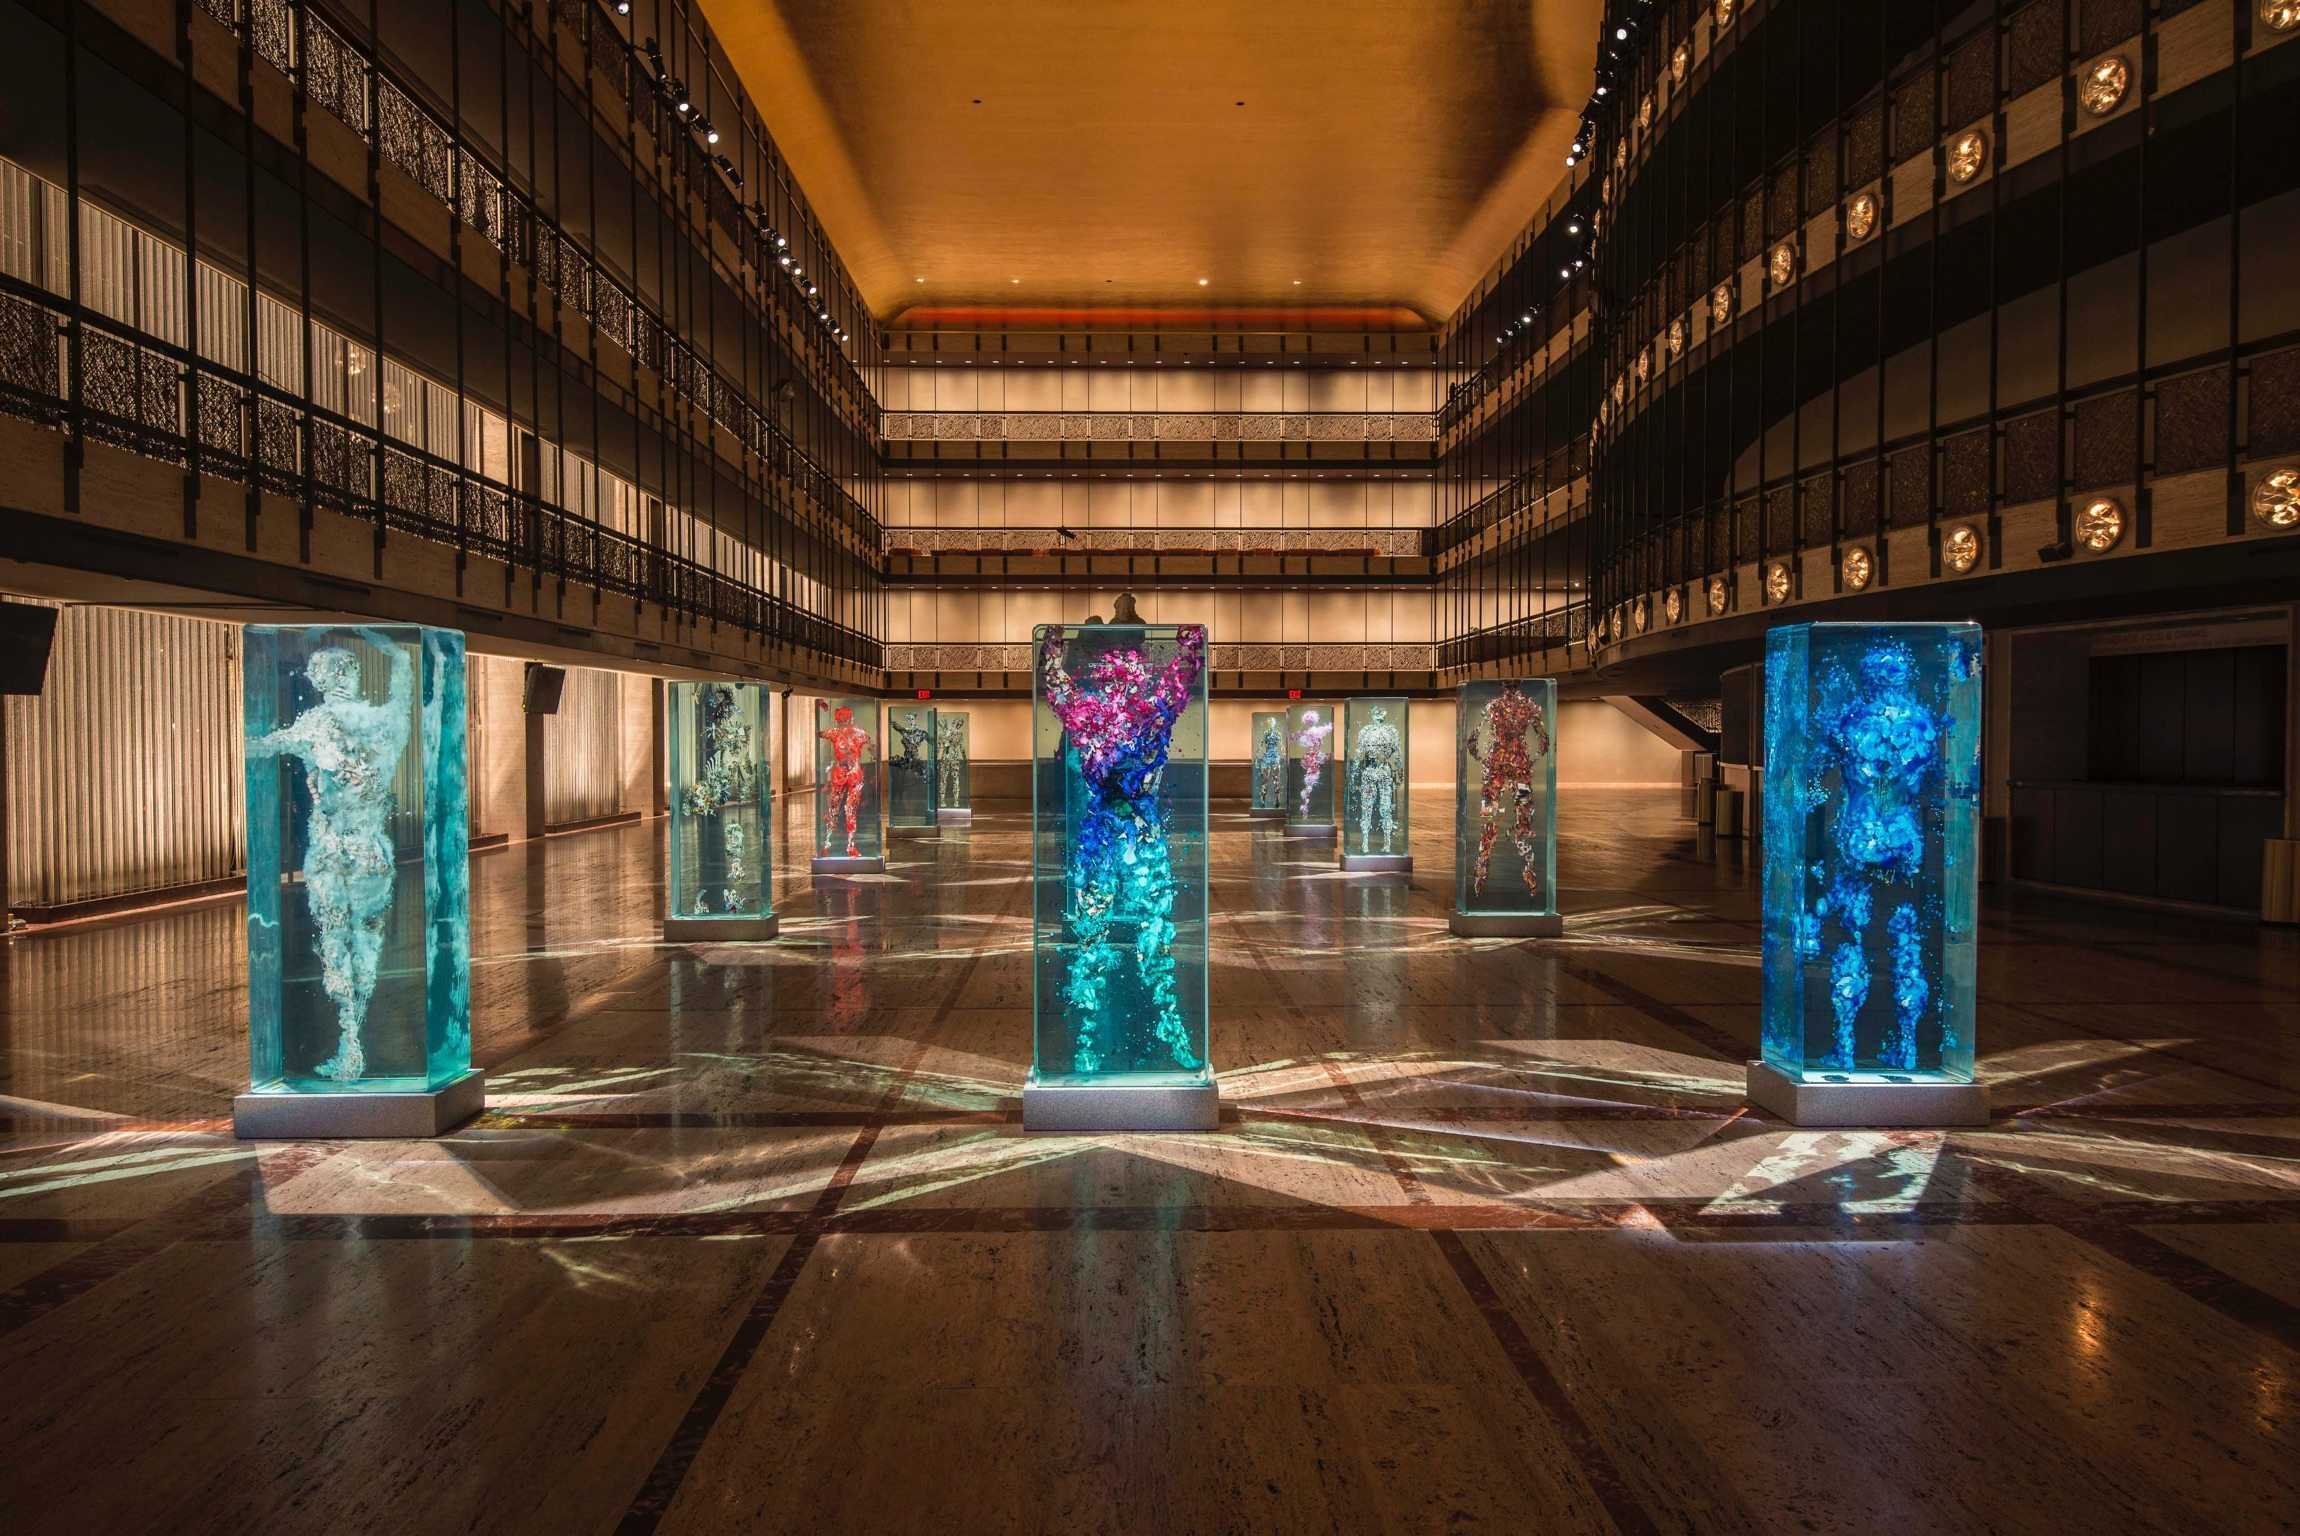 Image: Dustin Yellin's Sculptures in Lincoln Center